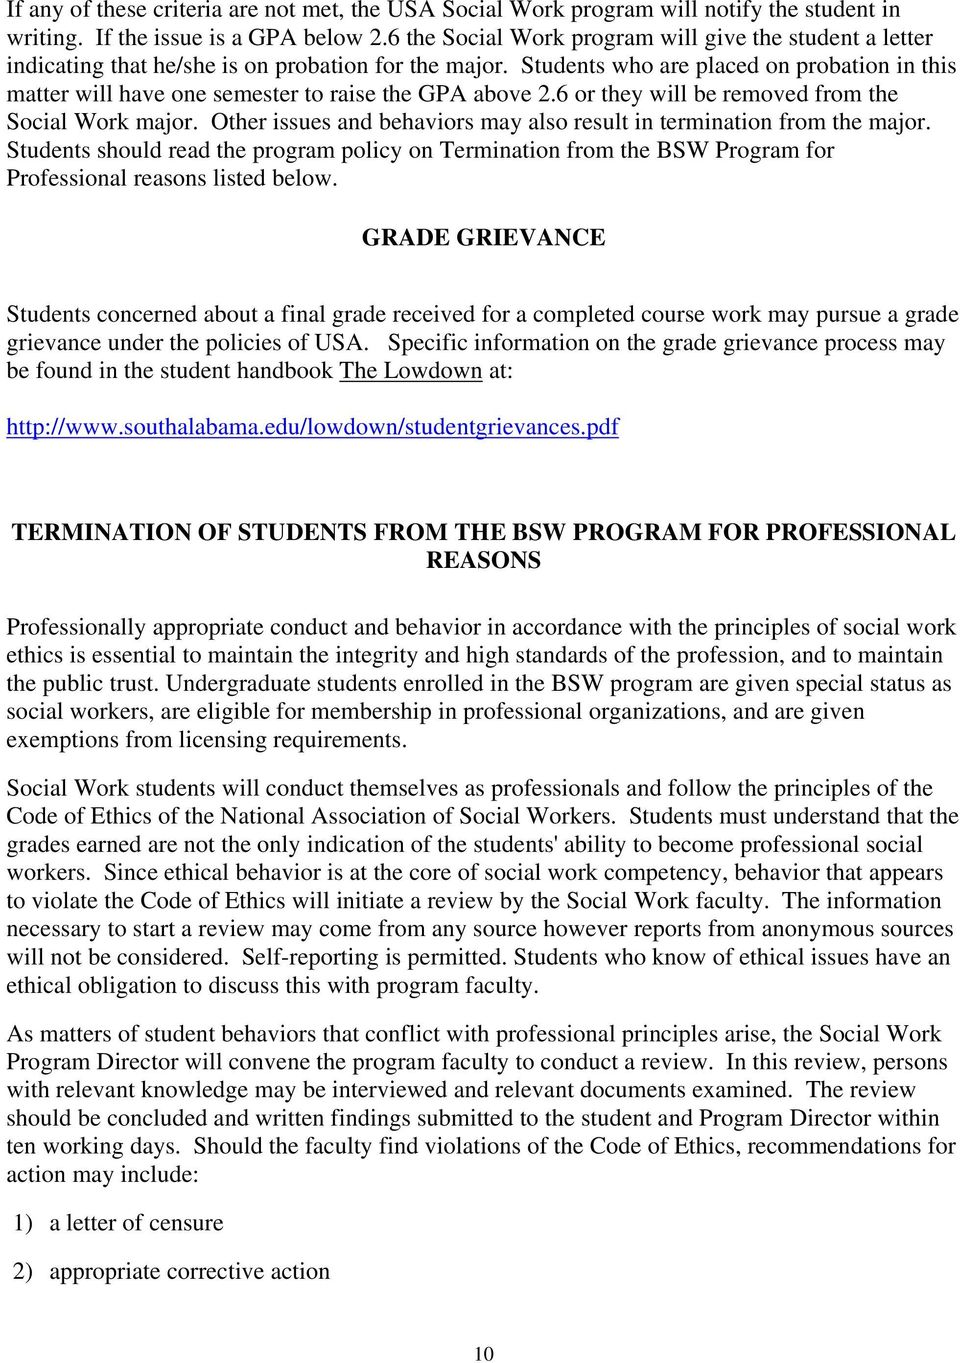 Students who are placed on probation in this matter will have one semester to raise the GPA above 2.6 or they will be removed from the Social Work major.